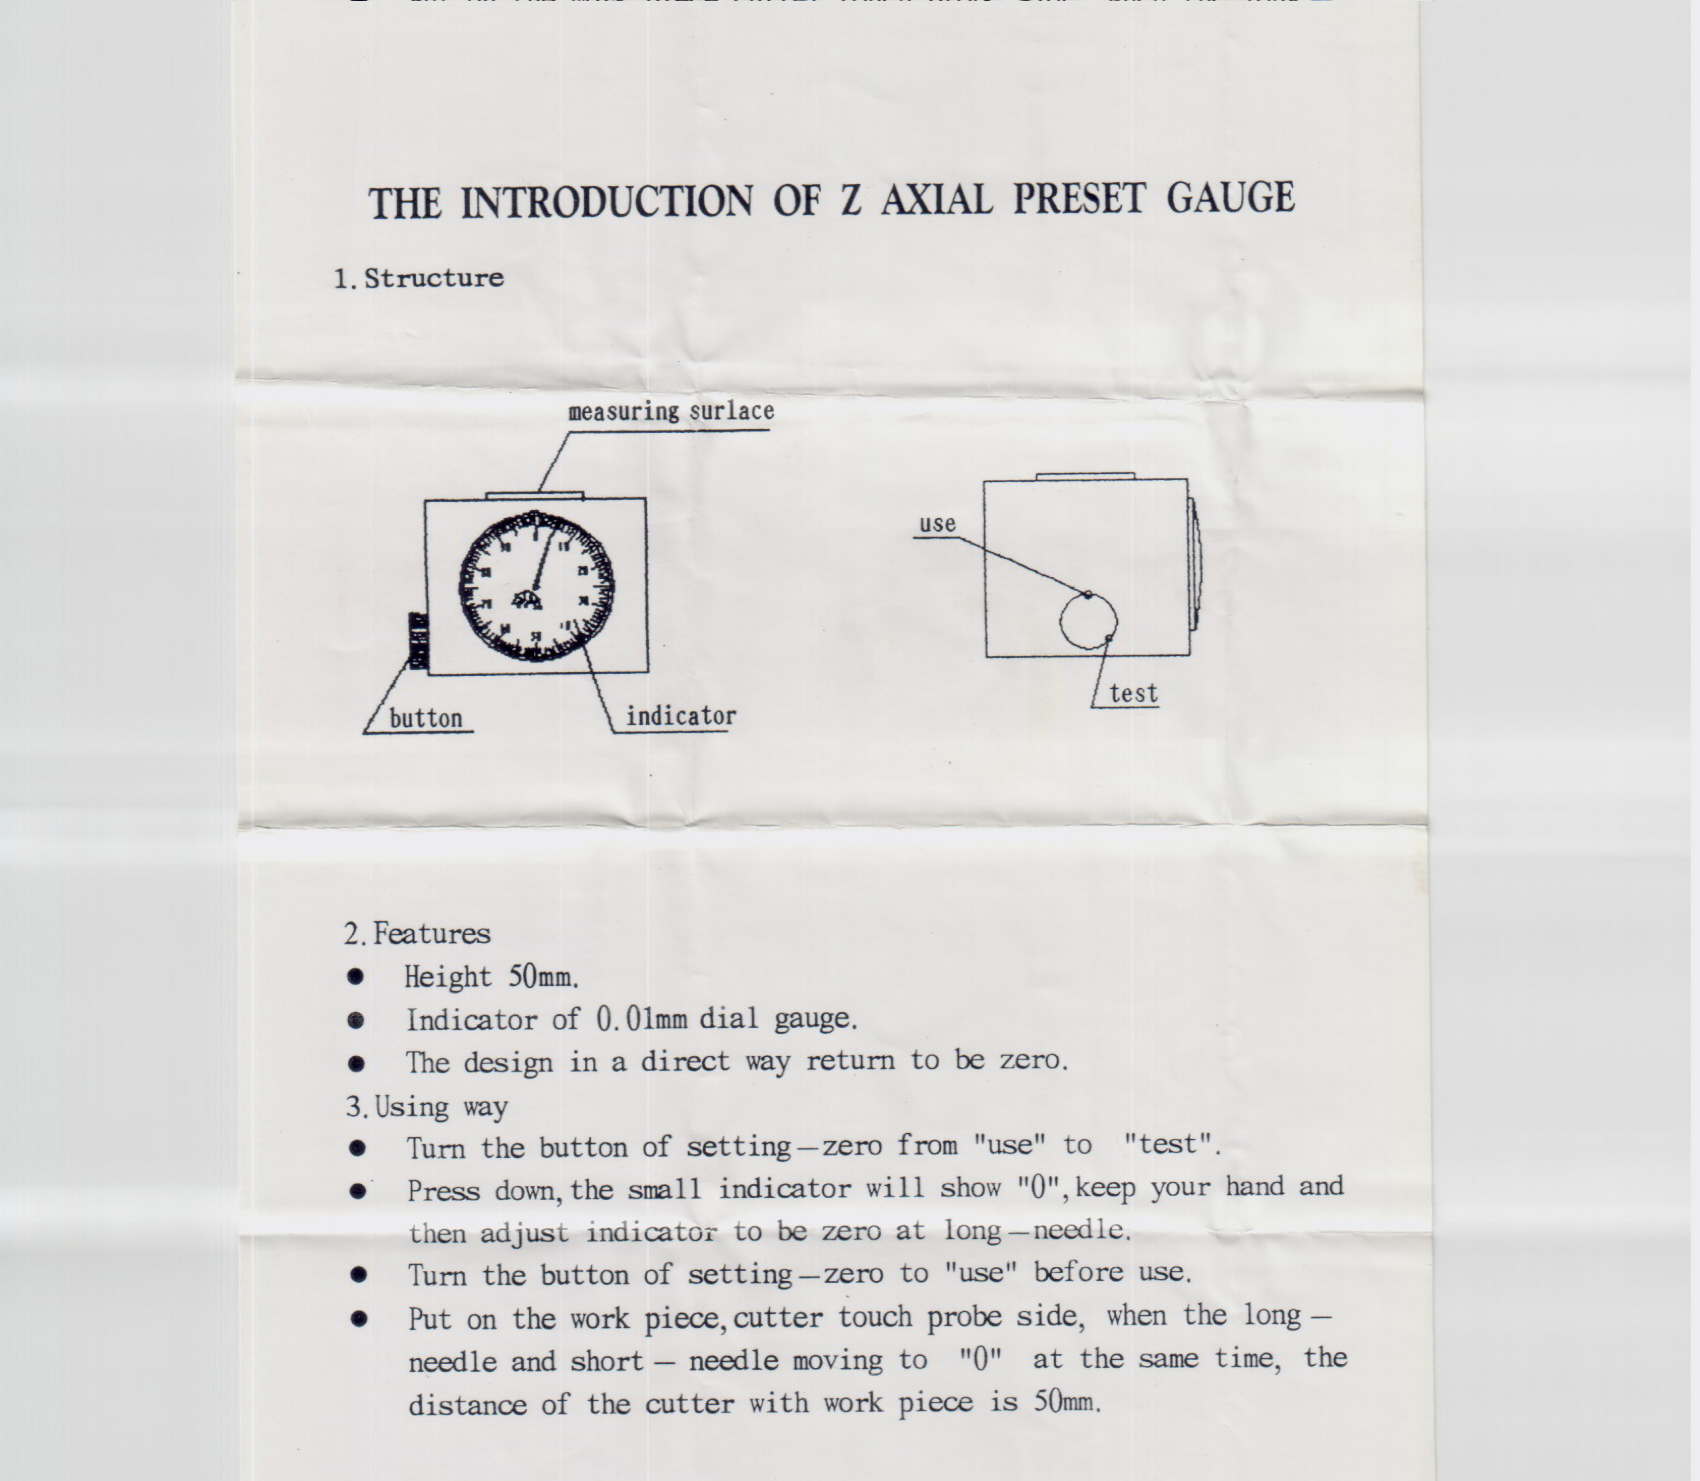 Manuals Tables Schematics Jet Band Saw Wiring Diagram Z Offset Gage Instructions Electrical